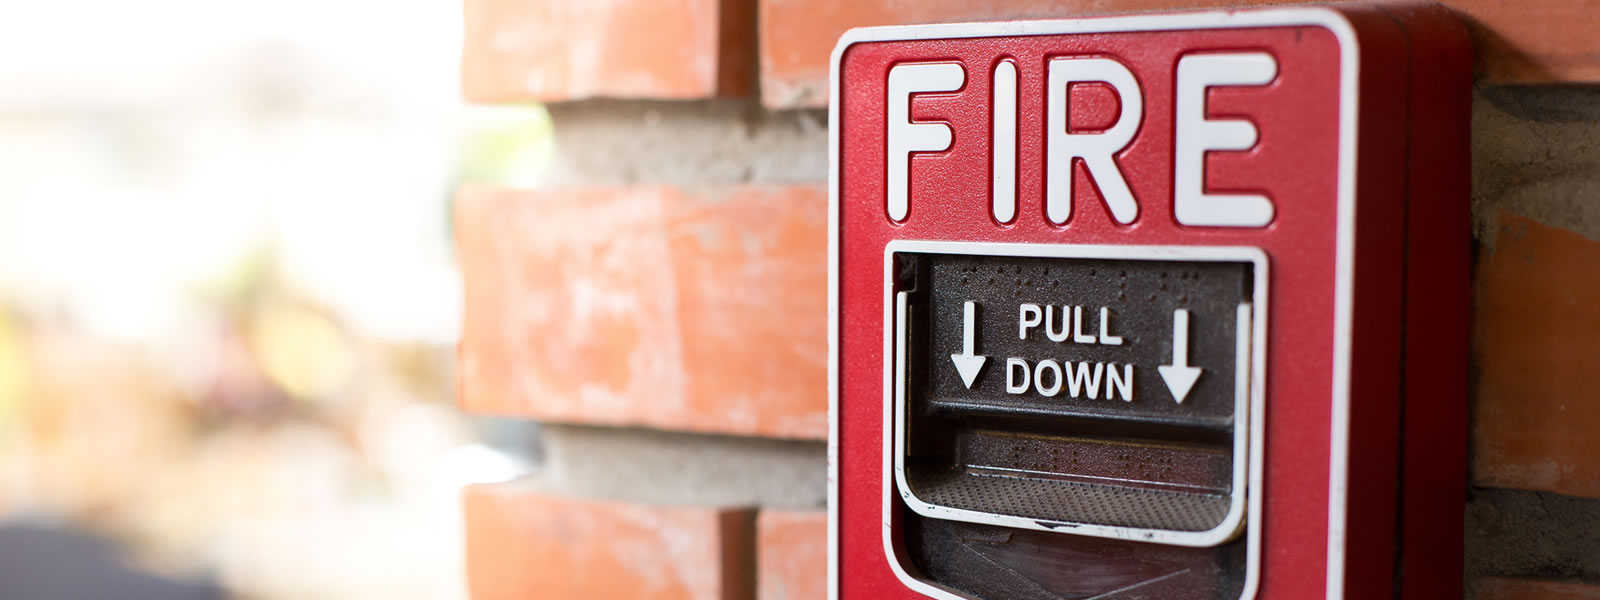 Complete fire alarm systems